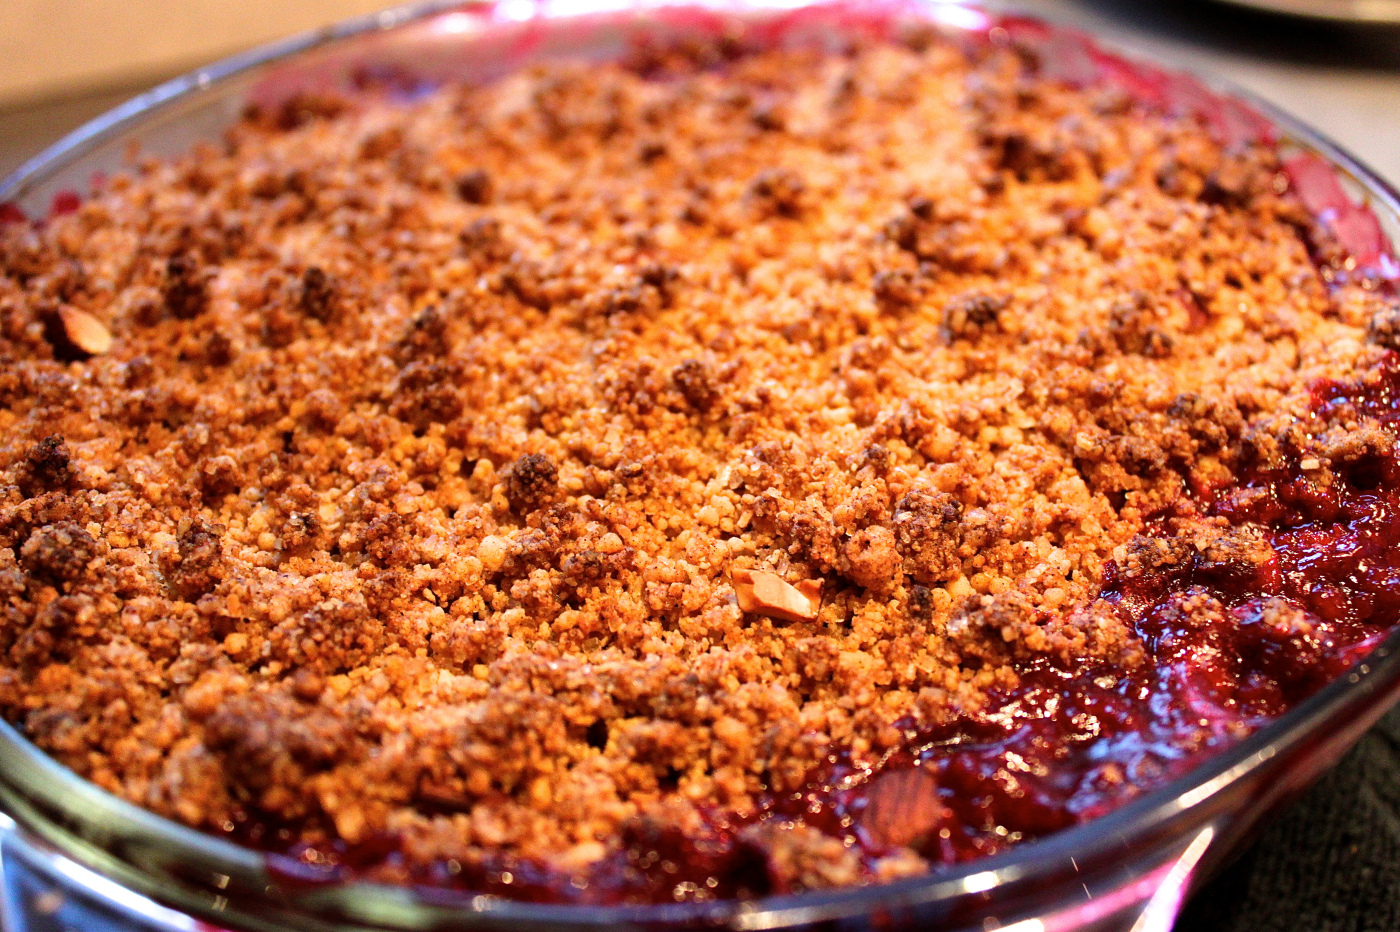 Apple & Blackberry Crumble with Cinnamon & Almonds | Winter Warmer Wednesday